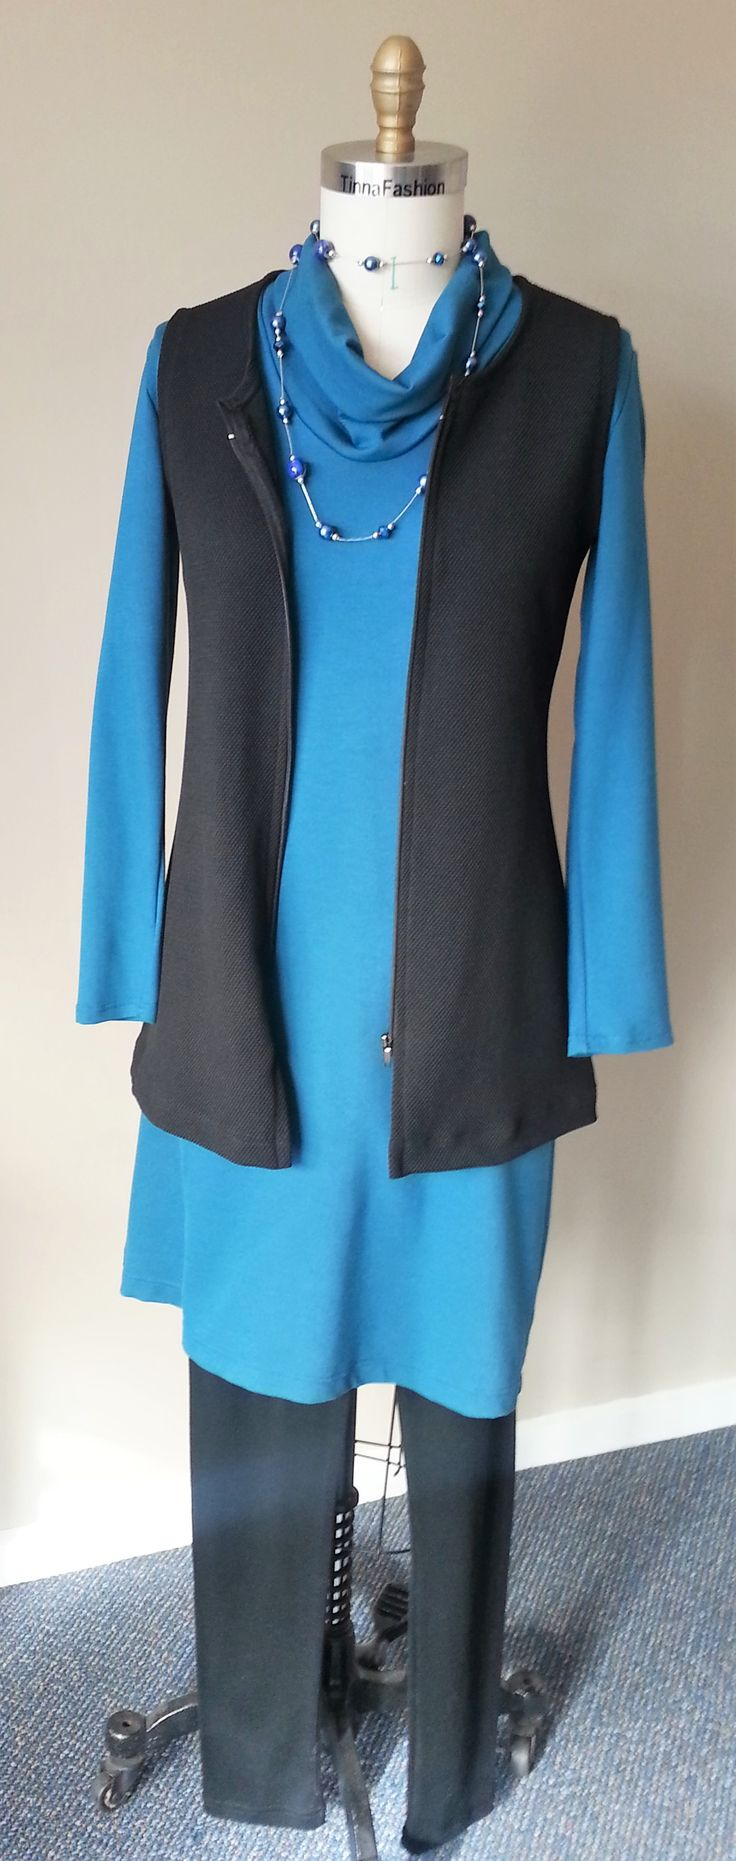 Classic Knit Dress in Teal Monty fabric, a pair of Pure Wool Leggings, and a Long Fitted Vest in Stretch Pique fabric